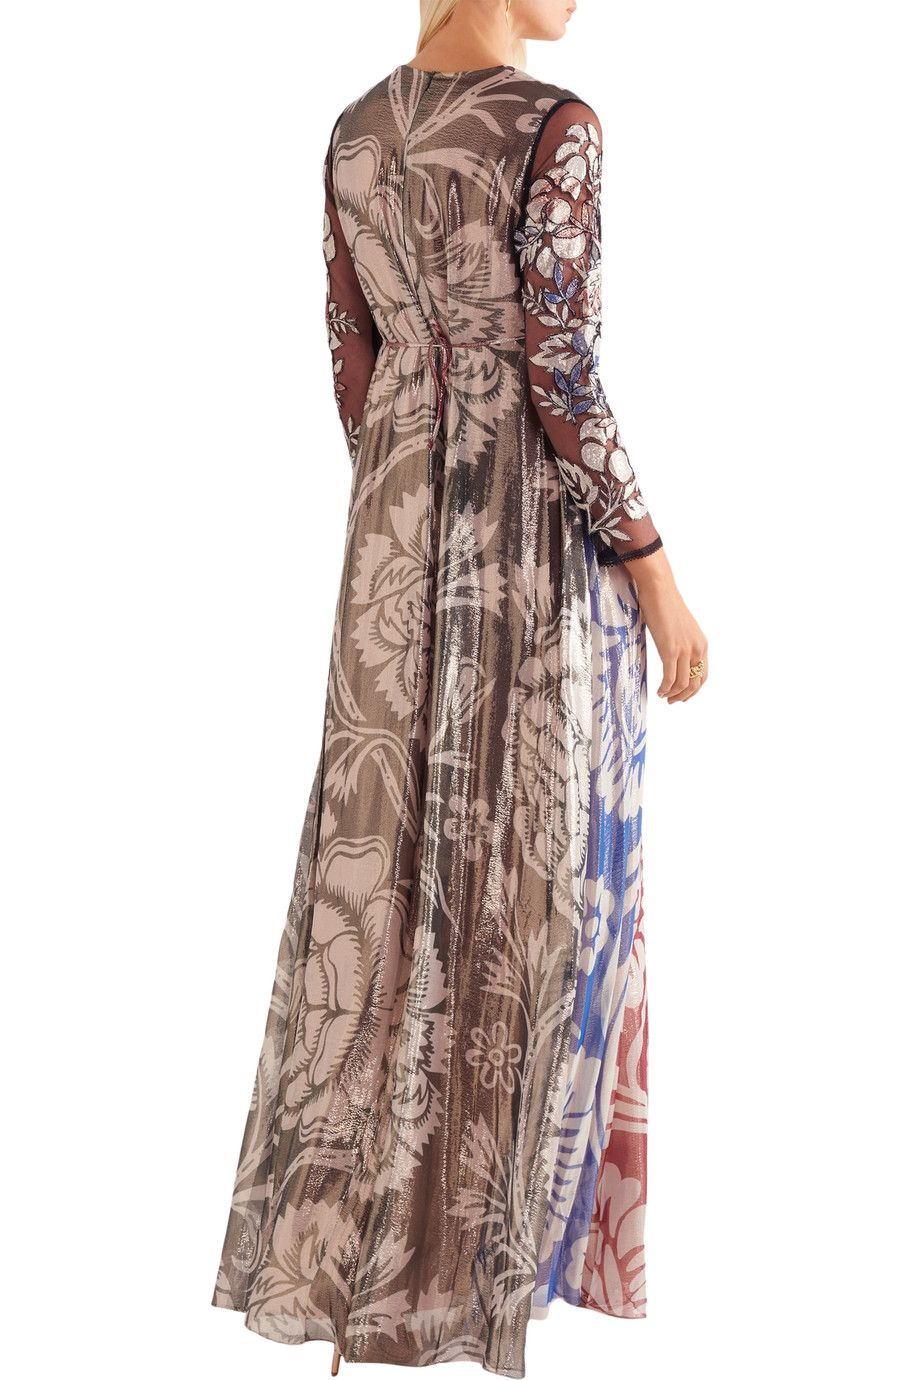 biyan gowns on sale